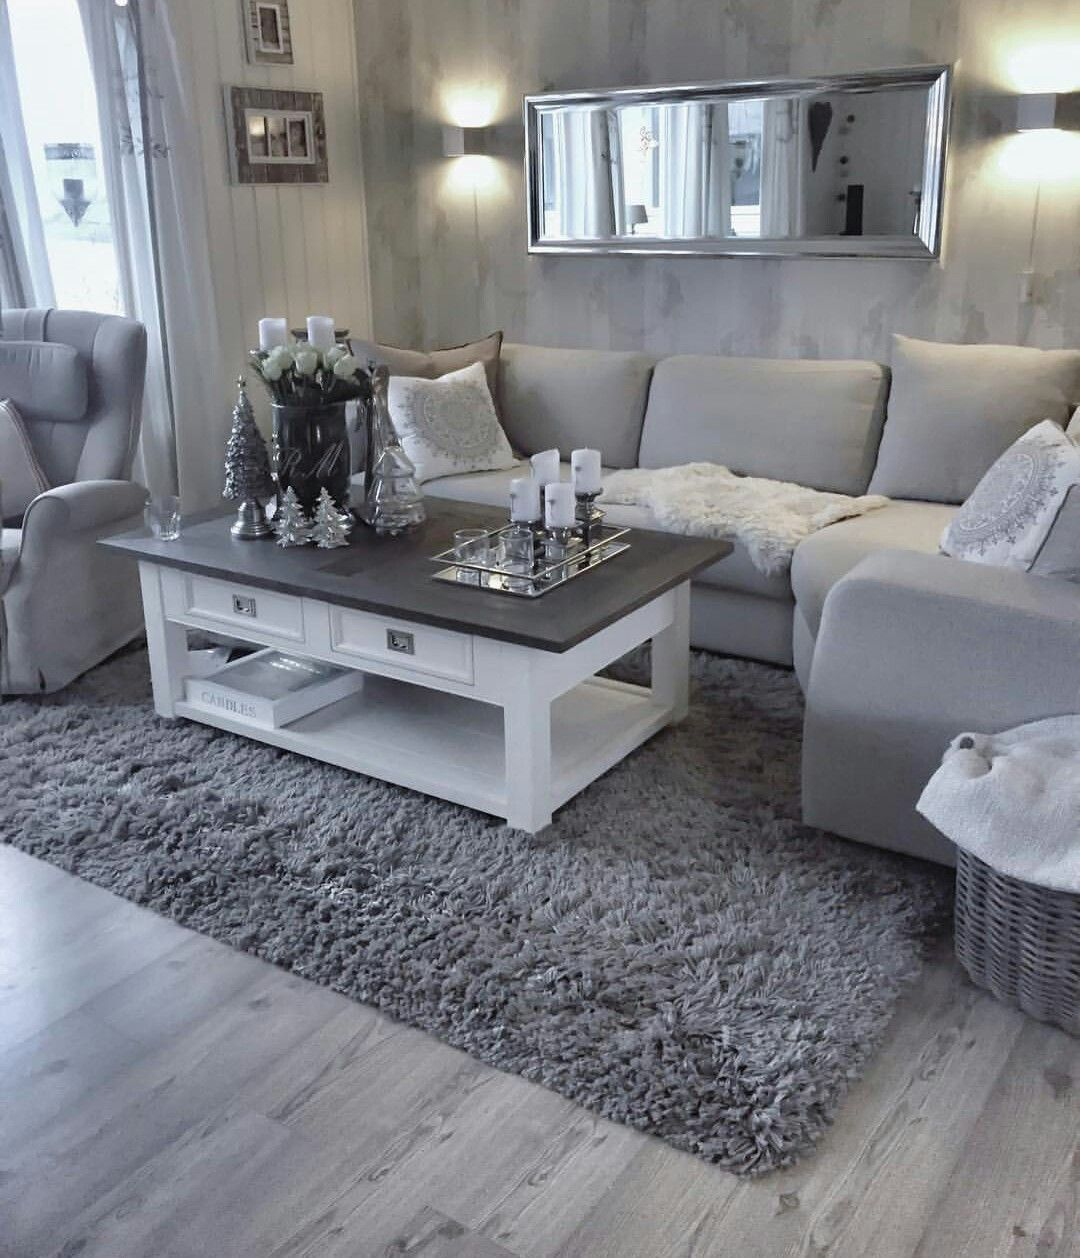 Light Grey Sofa With Two Tone White Coffee Table Atop A Darker Grey Area Rug Living Room Decor Apartment Farm House Living Room Simple Living Room